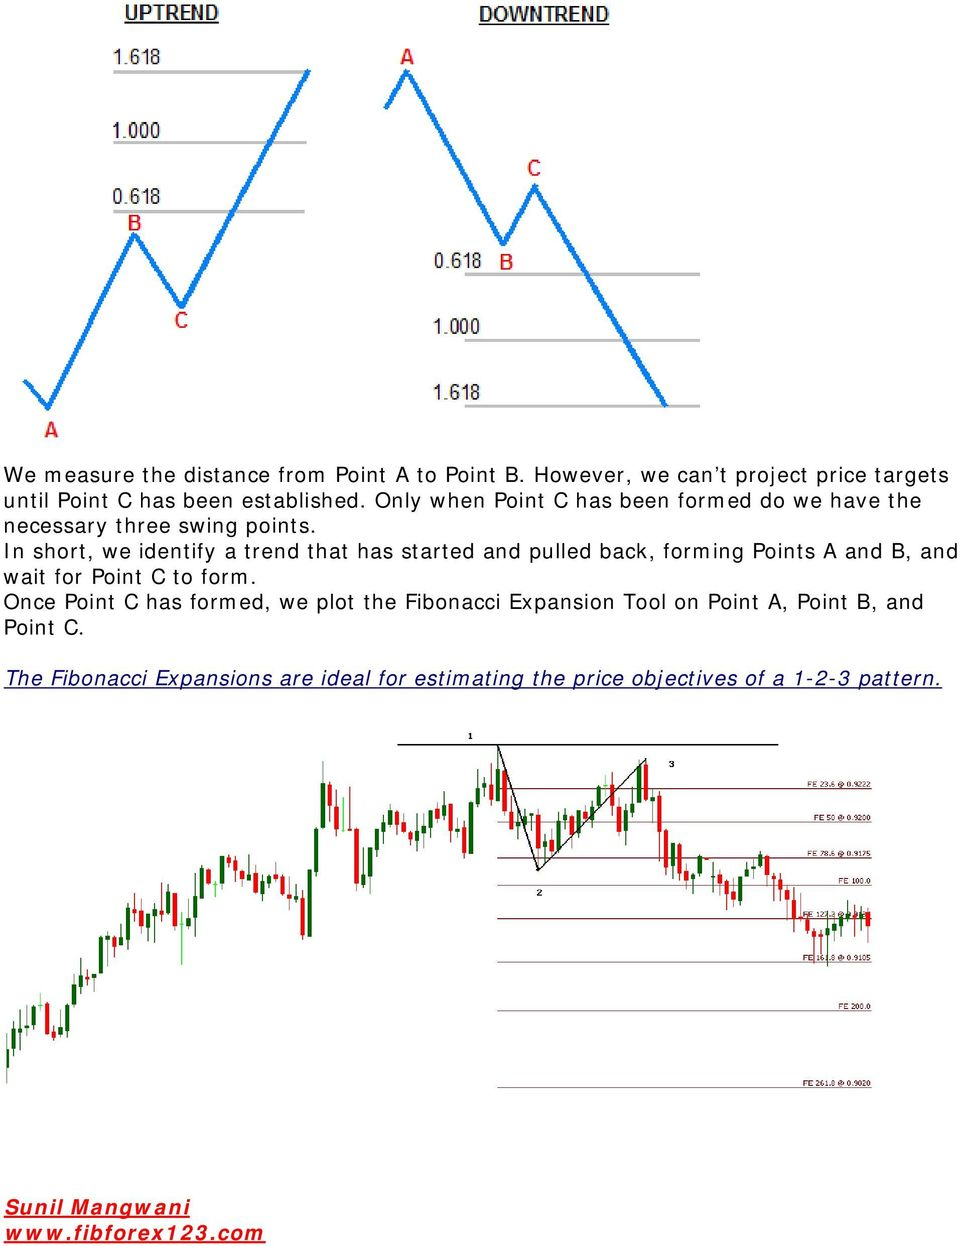 In short, we identify a trend that has started and pulled back, forming Points A and B, and wait for Point C to form.